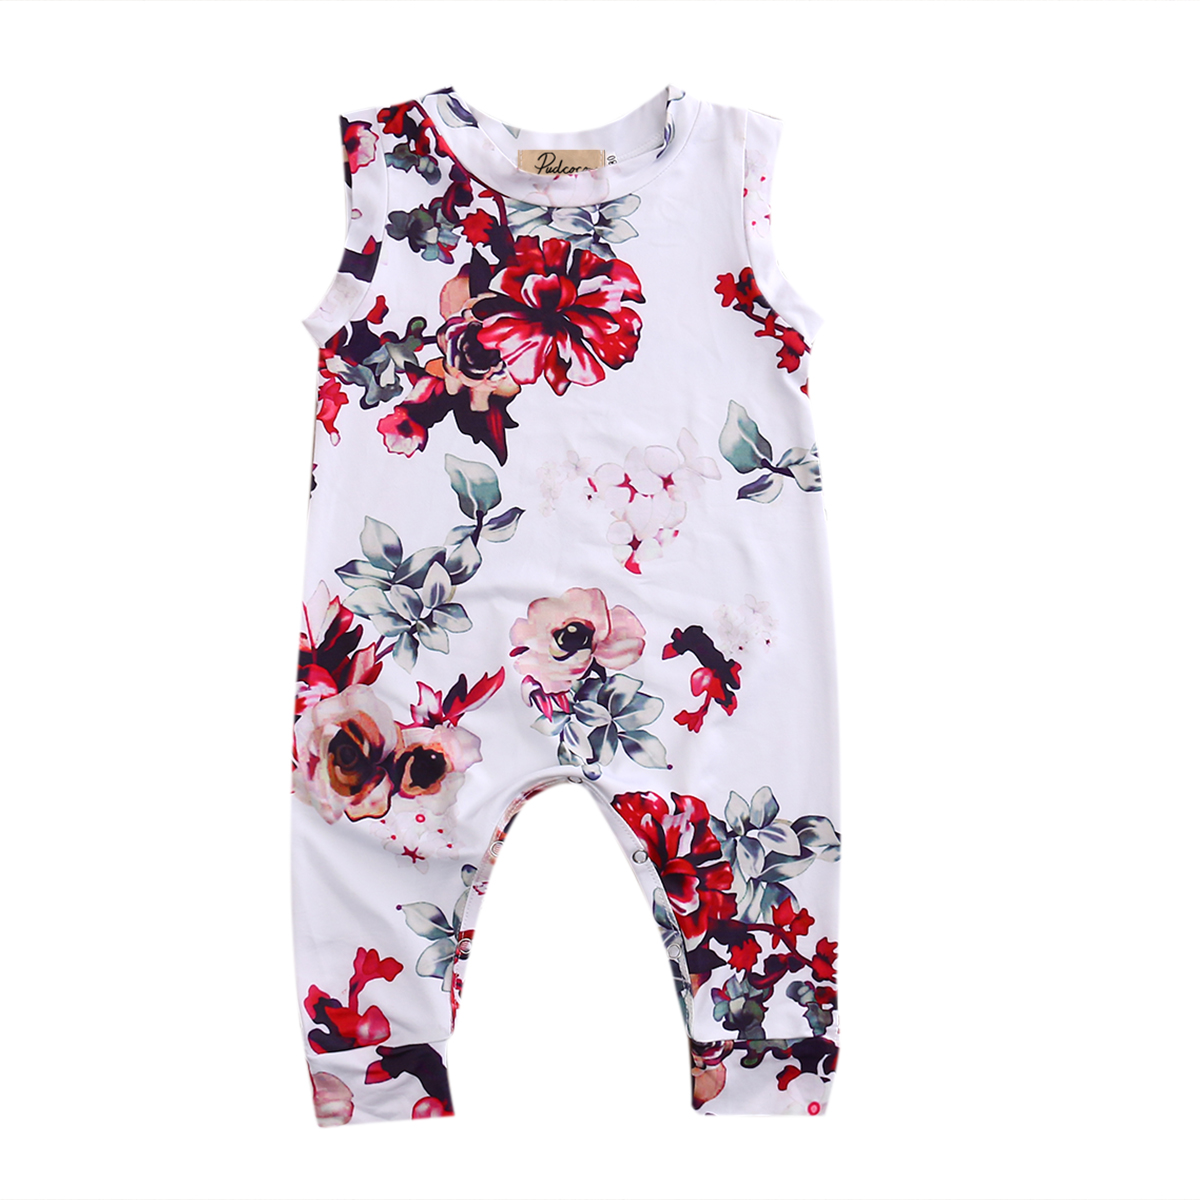 Summer Infant Newborn Kids Summer Toddler Baby Boys Girls Romper Outfits Sunsuit Jumpsuit Cotton Clothes cotton i must go print newborn infant baby boys clothes summer short sleeve rompers jumpsuit baby romper clothing outfits set